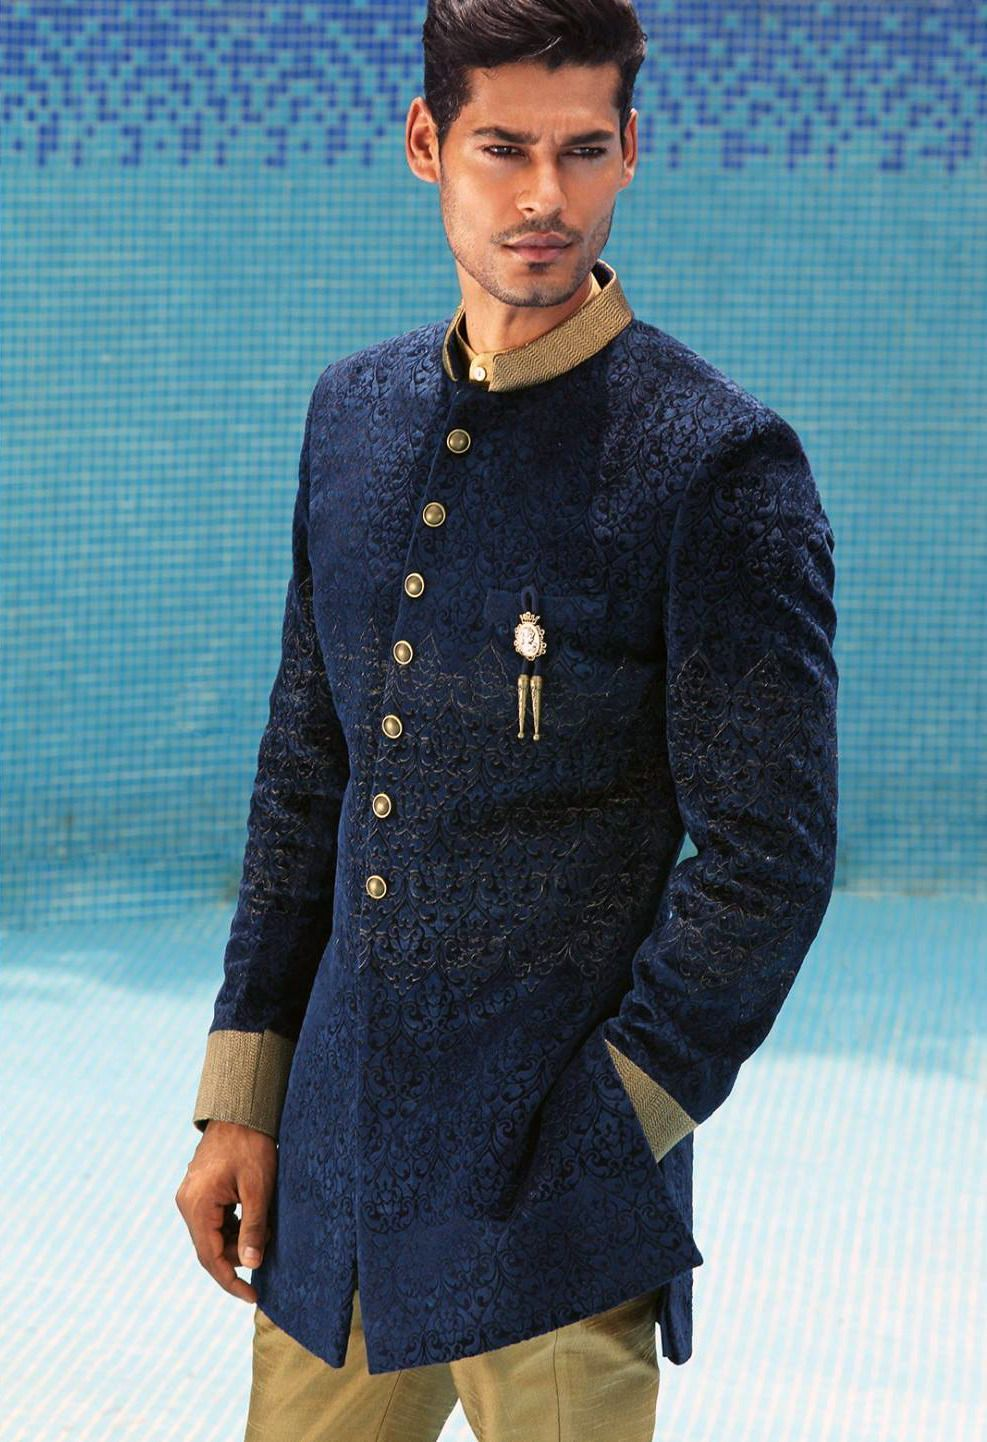 Desi Men #IndianFashion | .. Good suits for mens.. | Pinterest ...